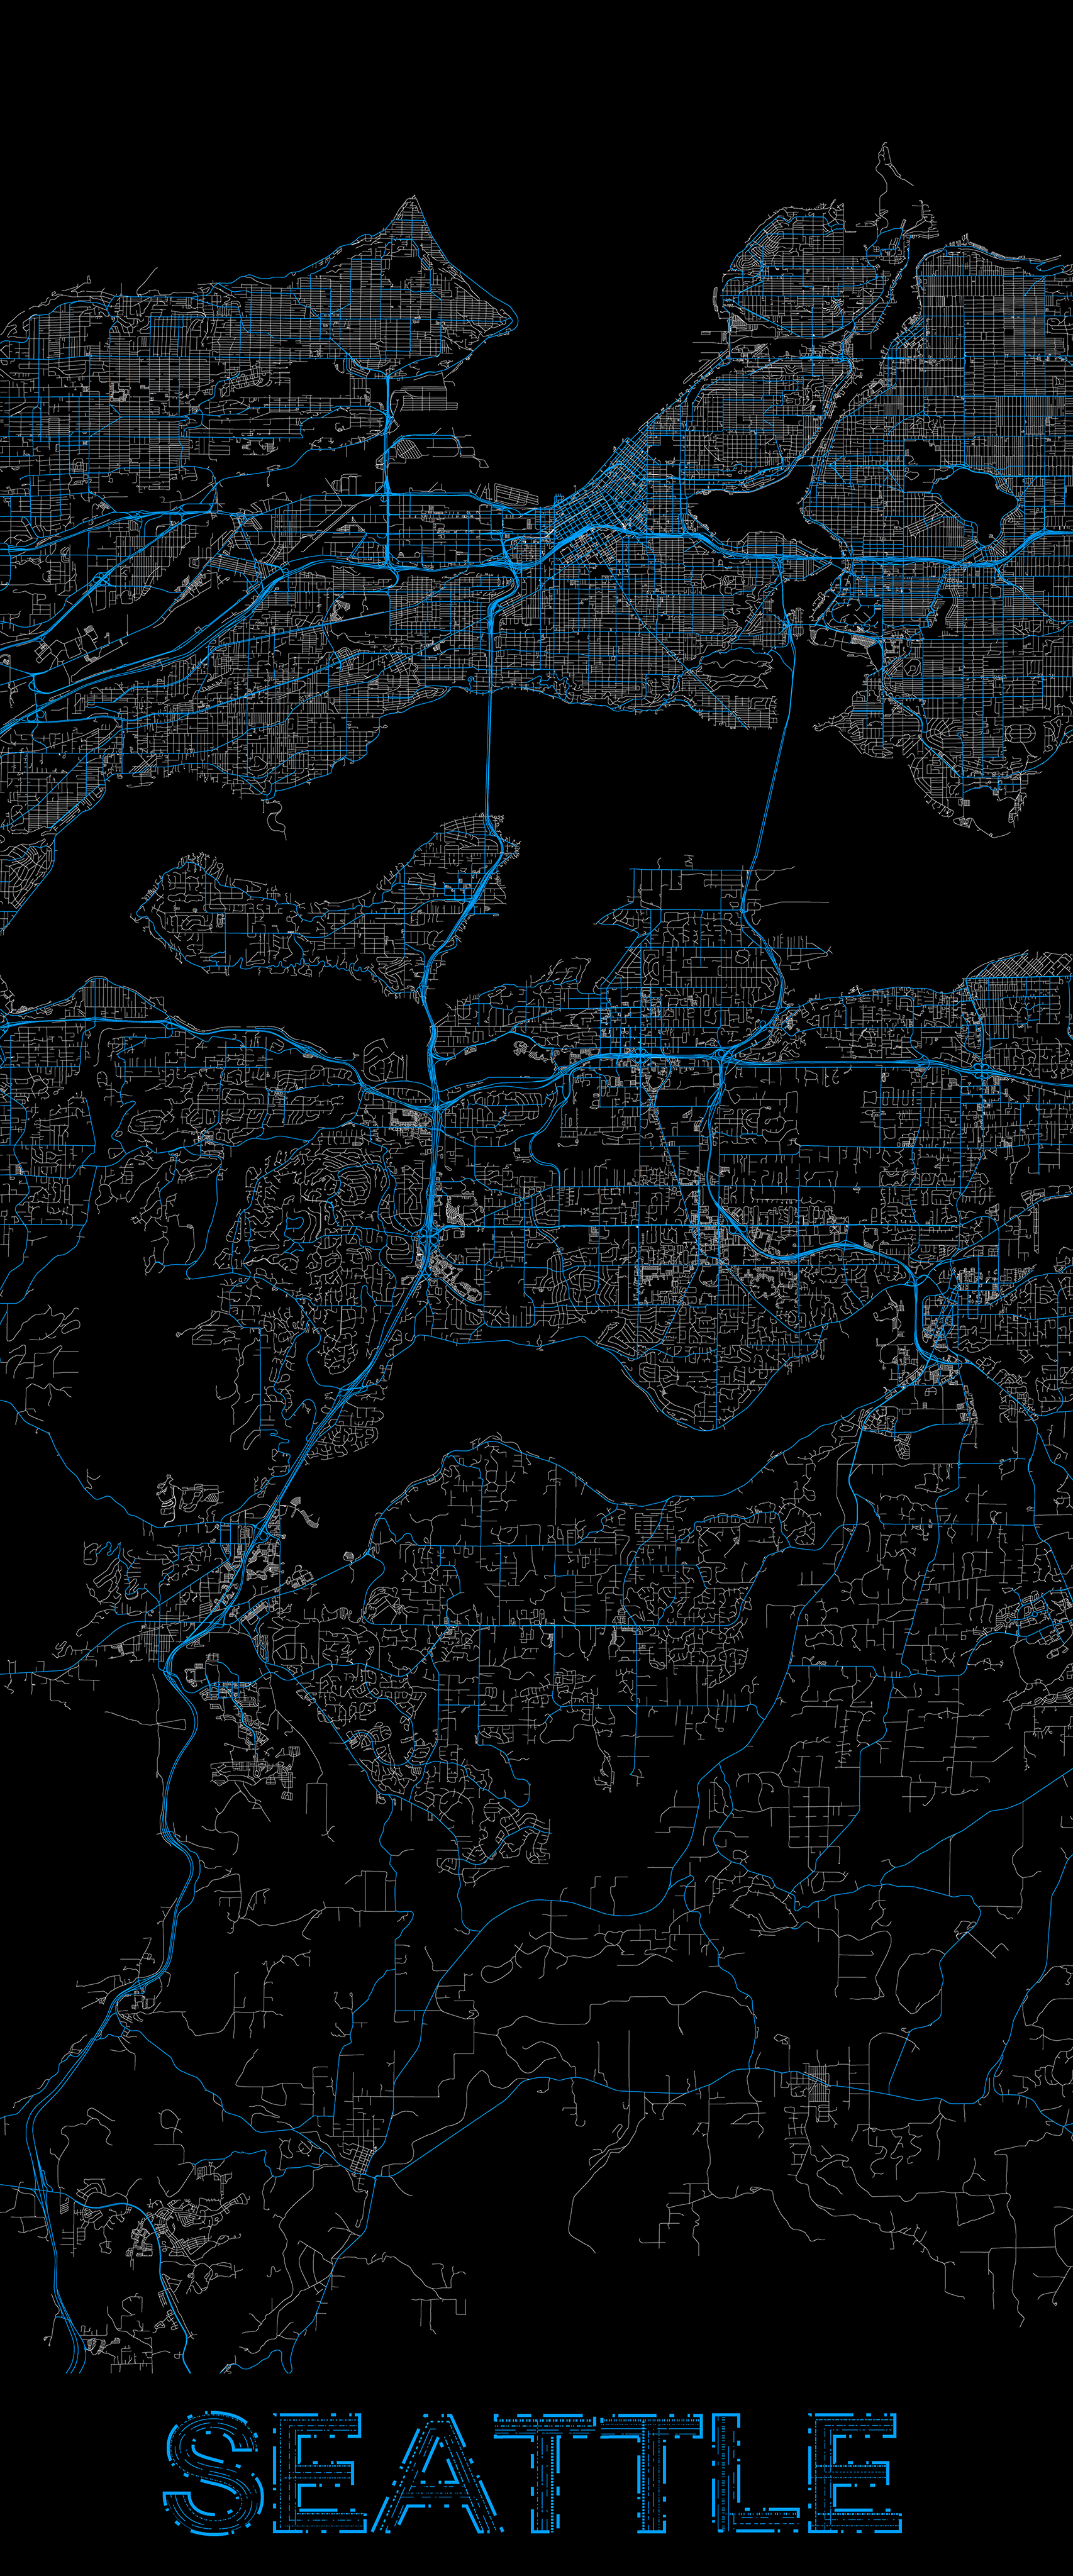 City map illustration of Seattle created using Maperitive, OpenStreetMap and Adobe Illustrator.